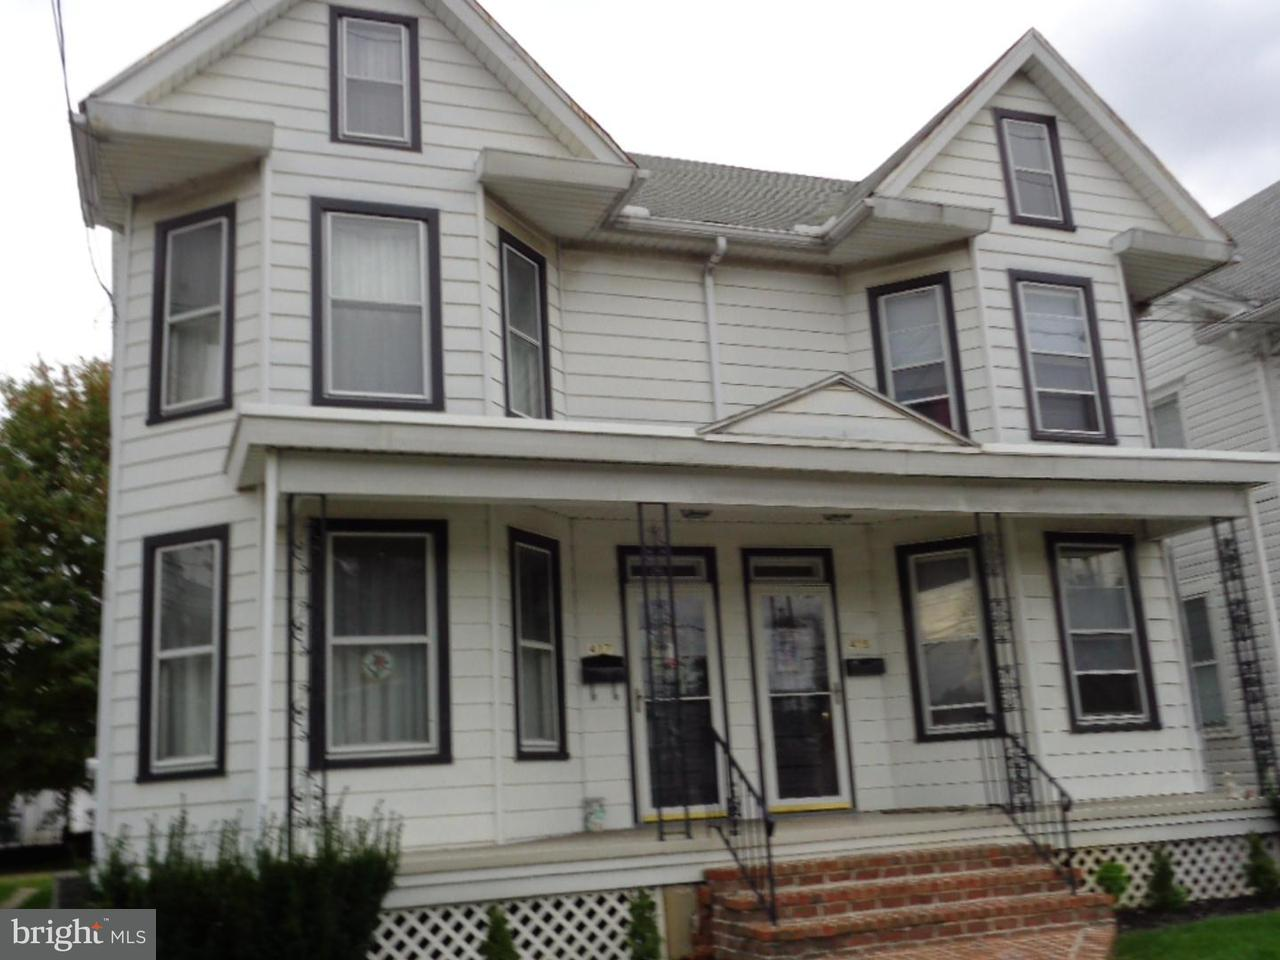 Other Residential for Rent at 415 W King St Shippensburg, Pennsylvania 17257 United States